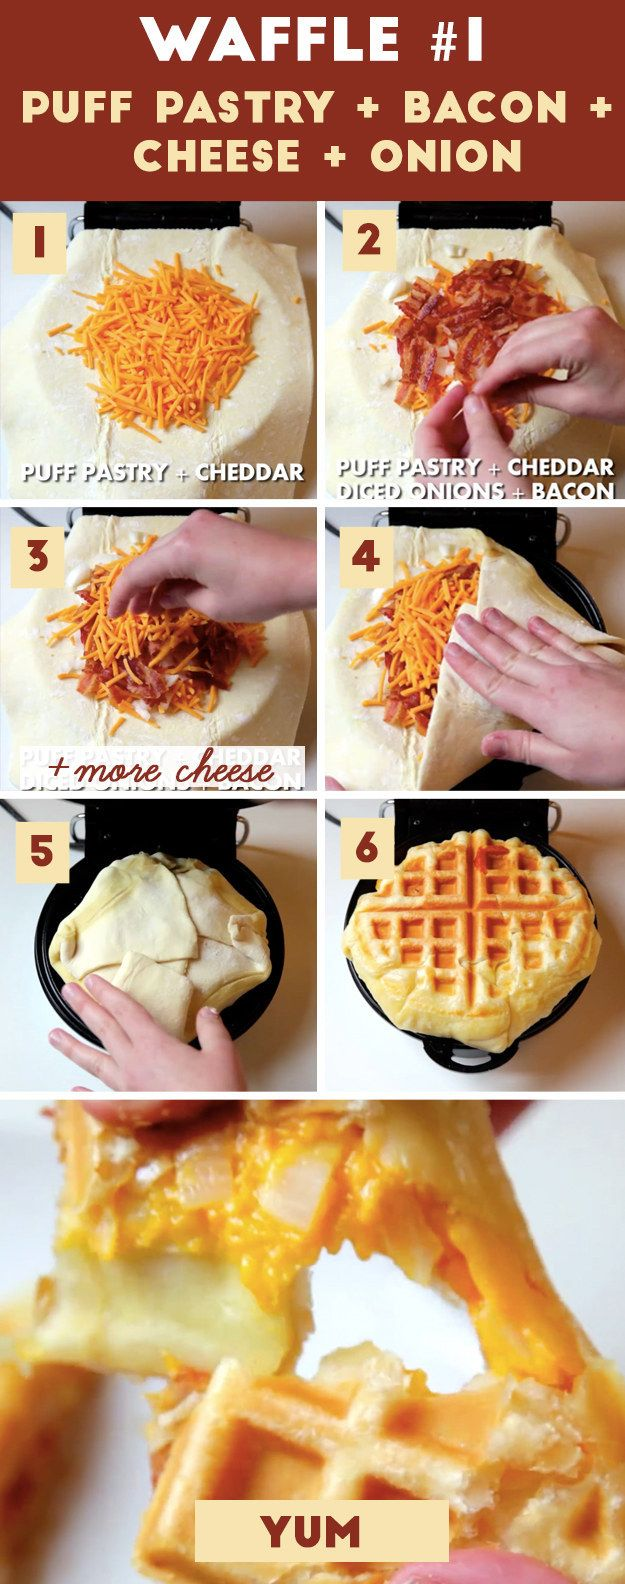 Easy Puff Pastry Waffle with Bacon, Cheese and Onion